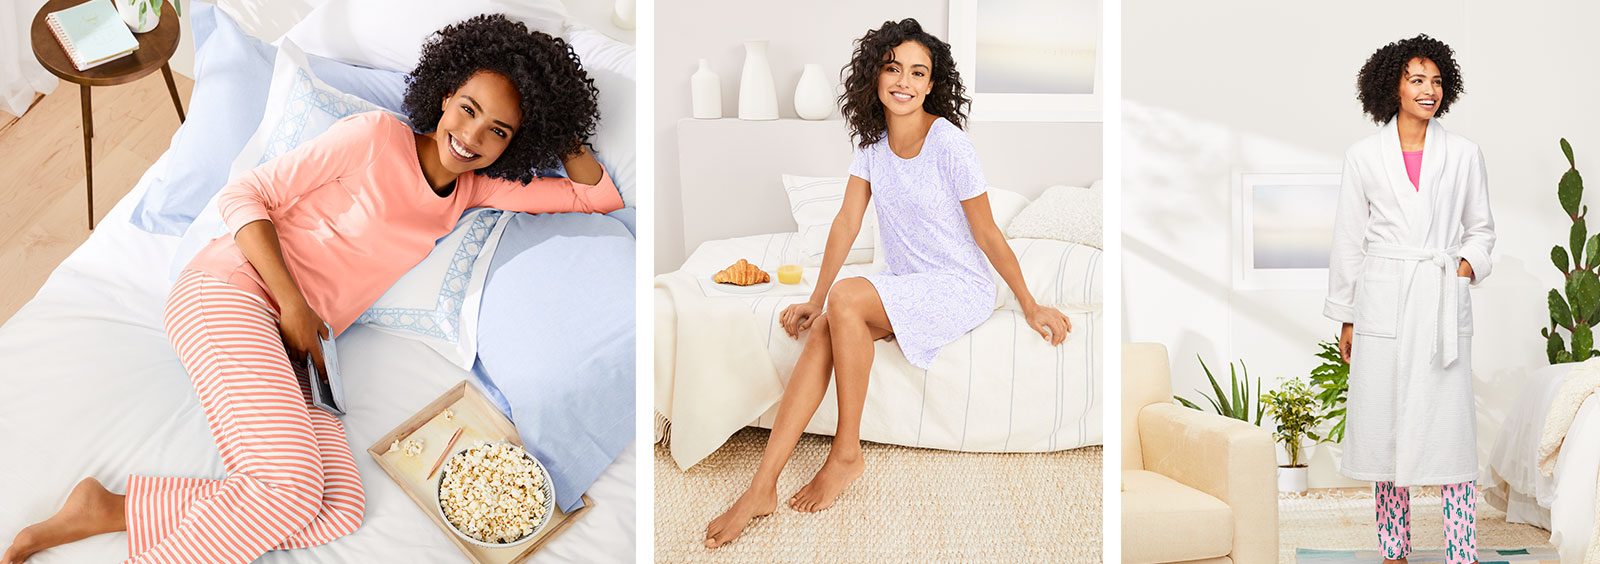 Women's Flannel Pajamas vs Nightgowns: What's More Comfortable